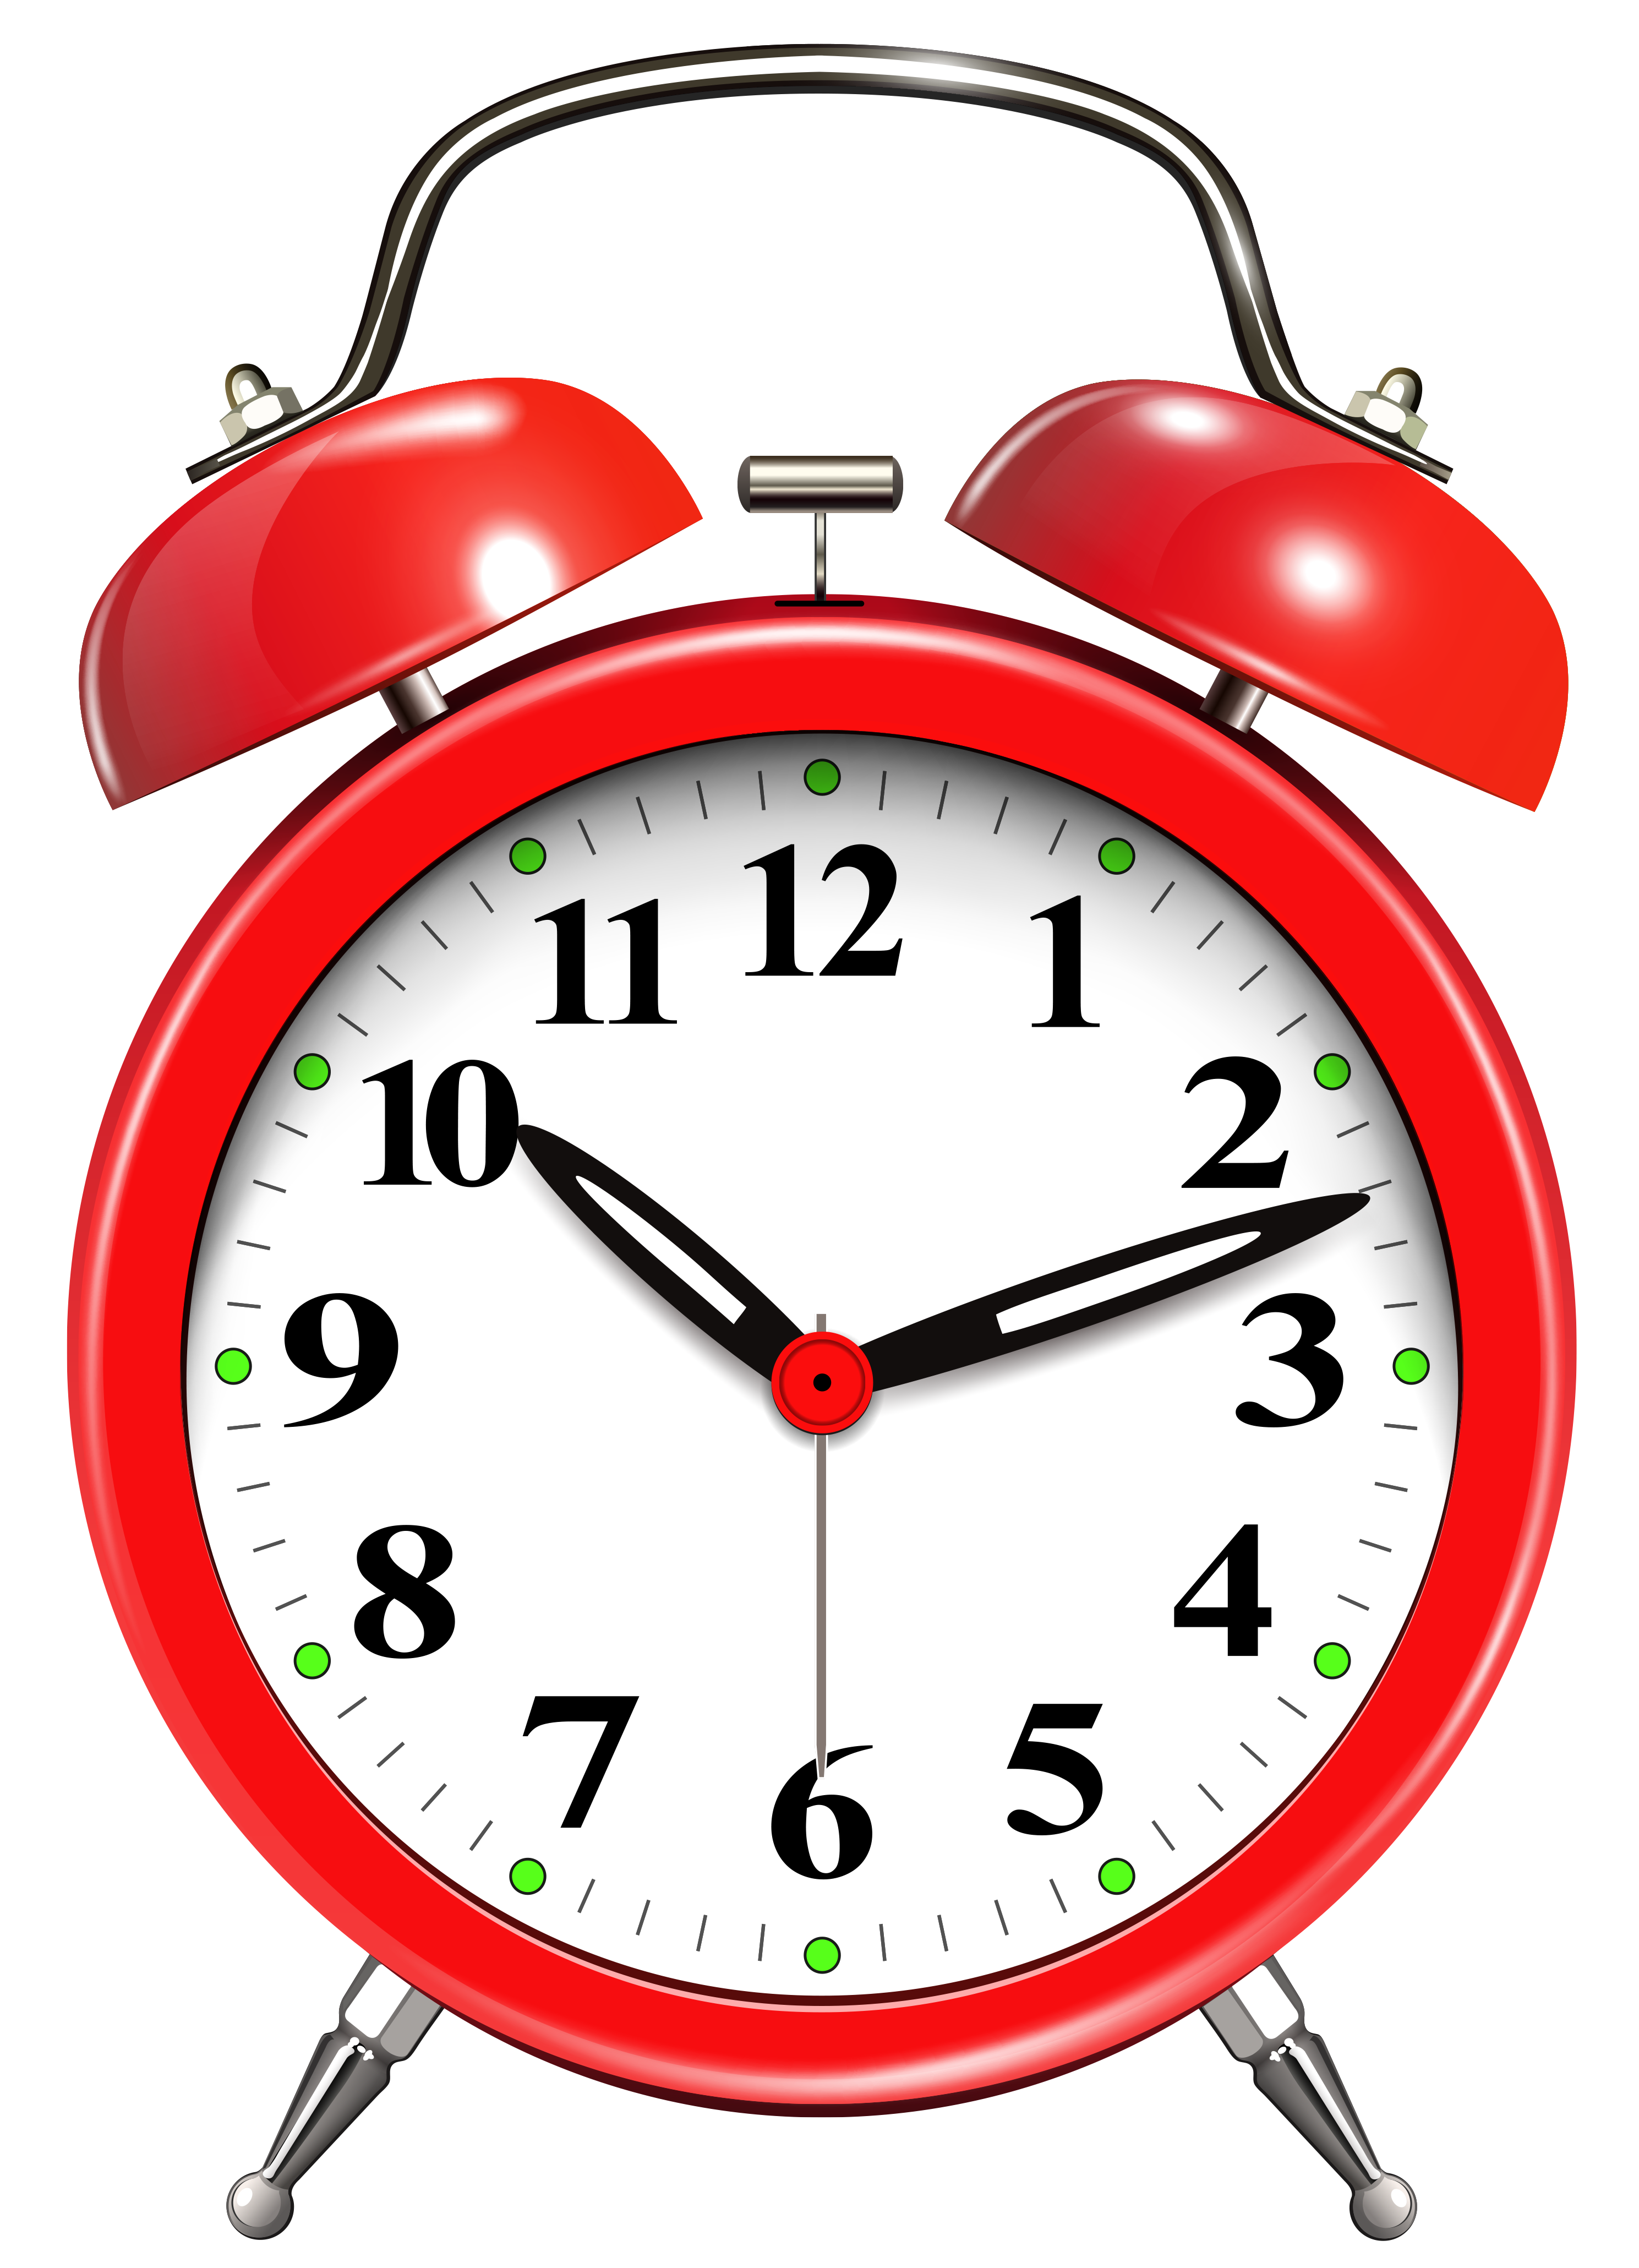 Alarm clipart clcok. Clock red png clip